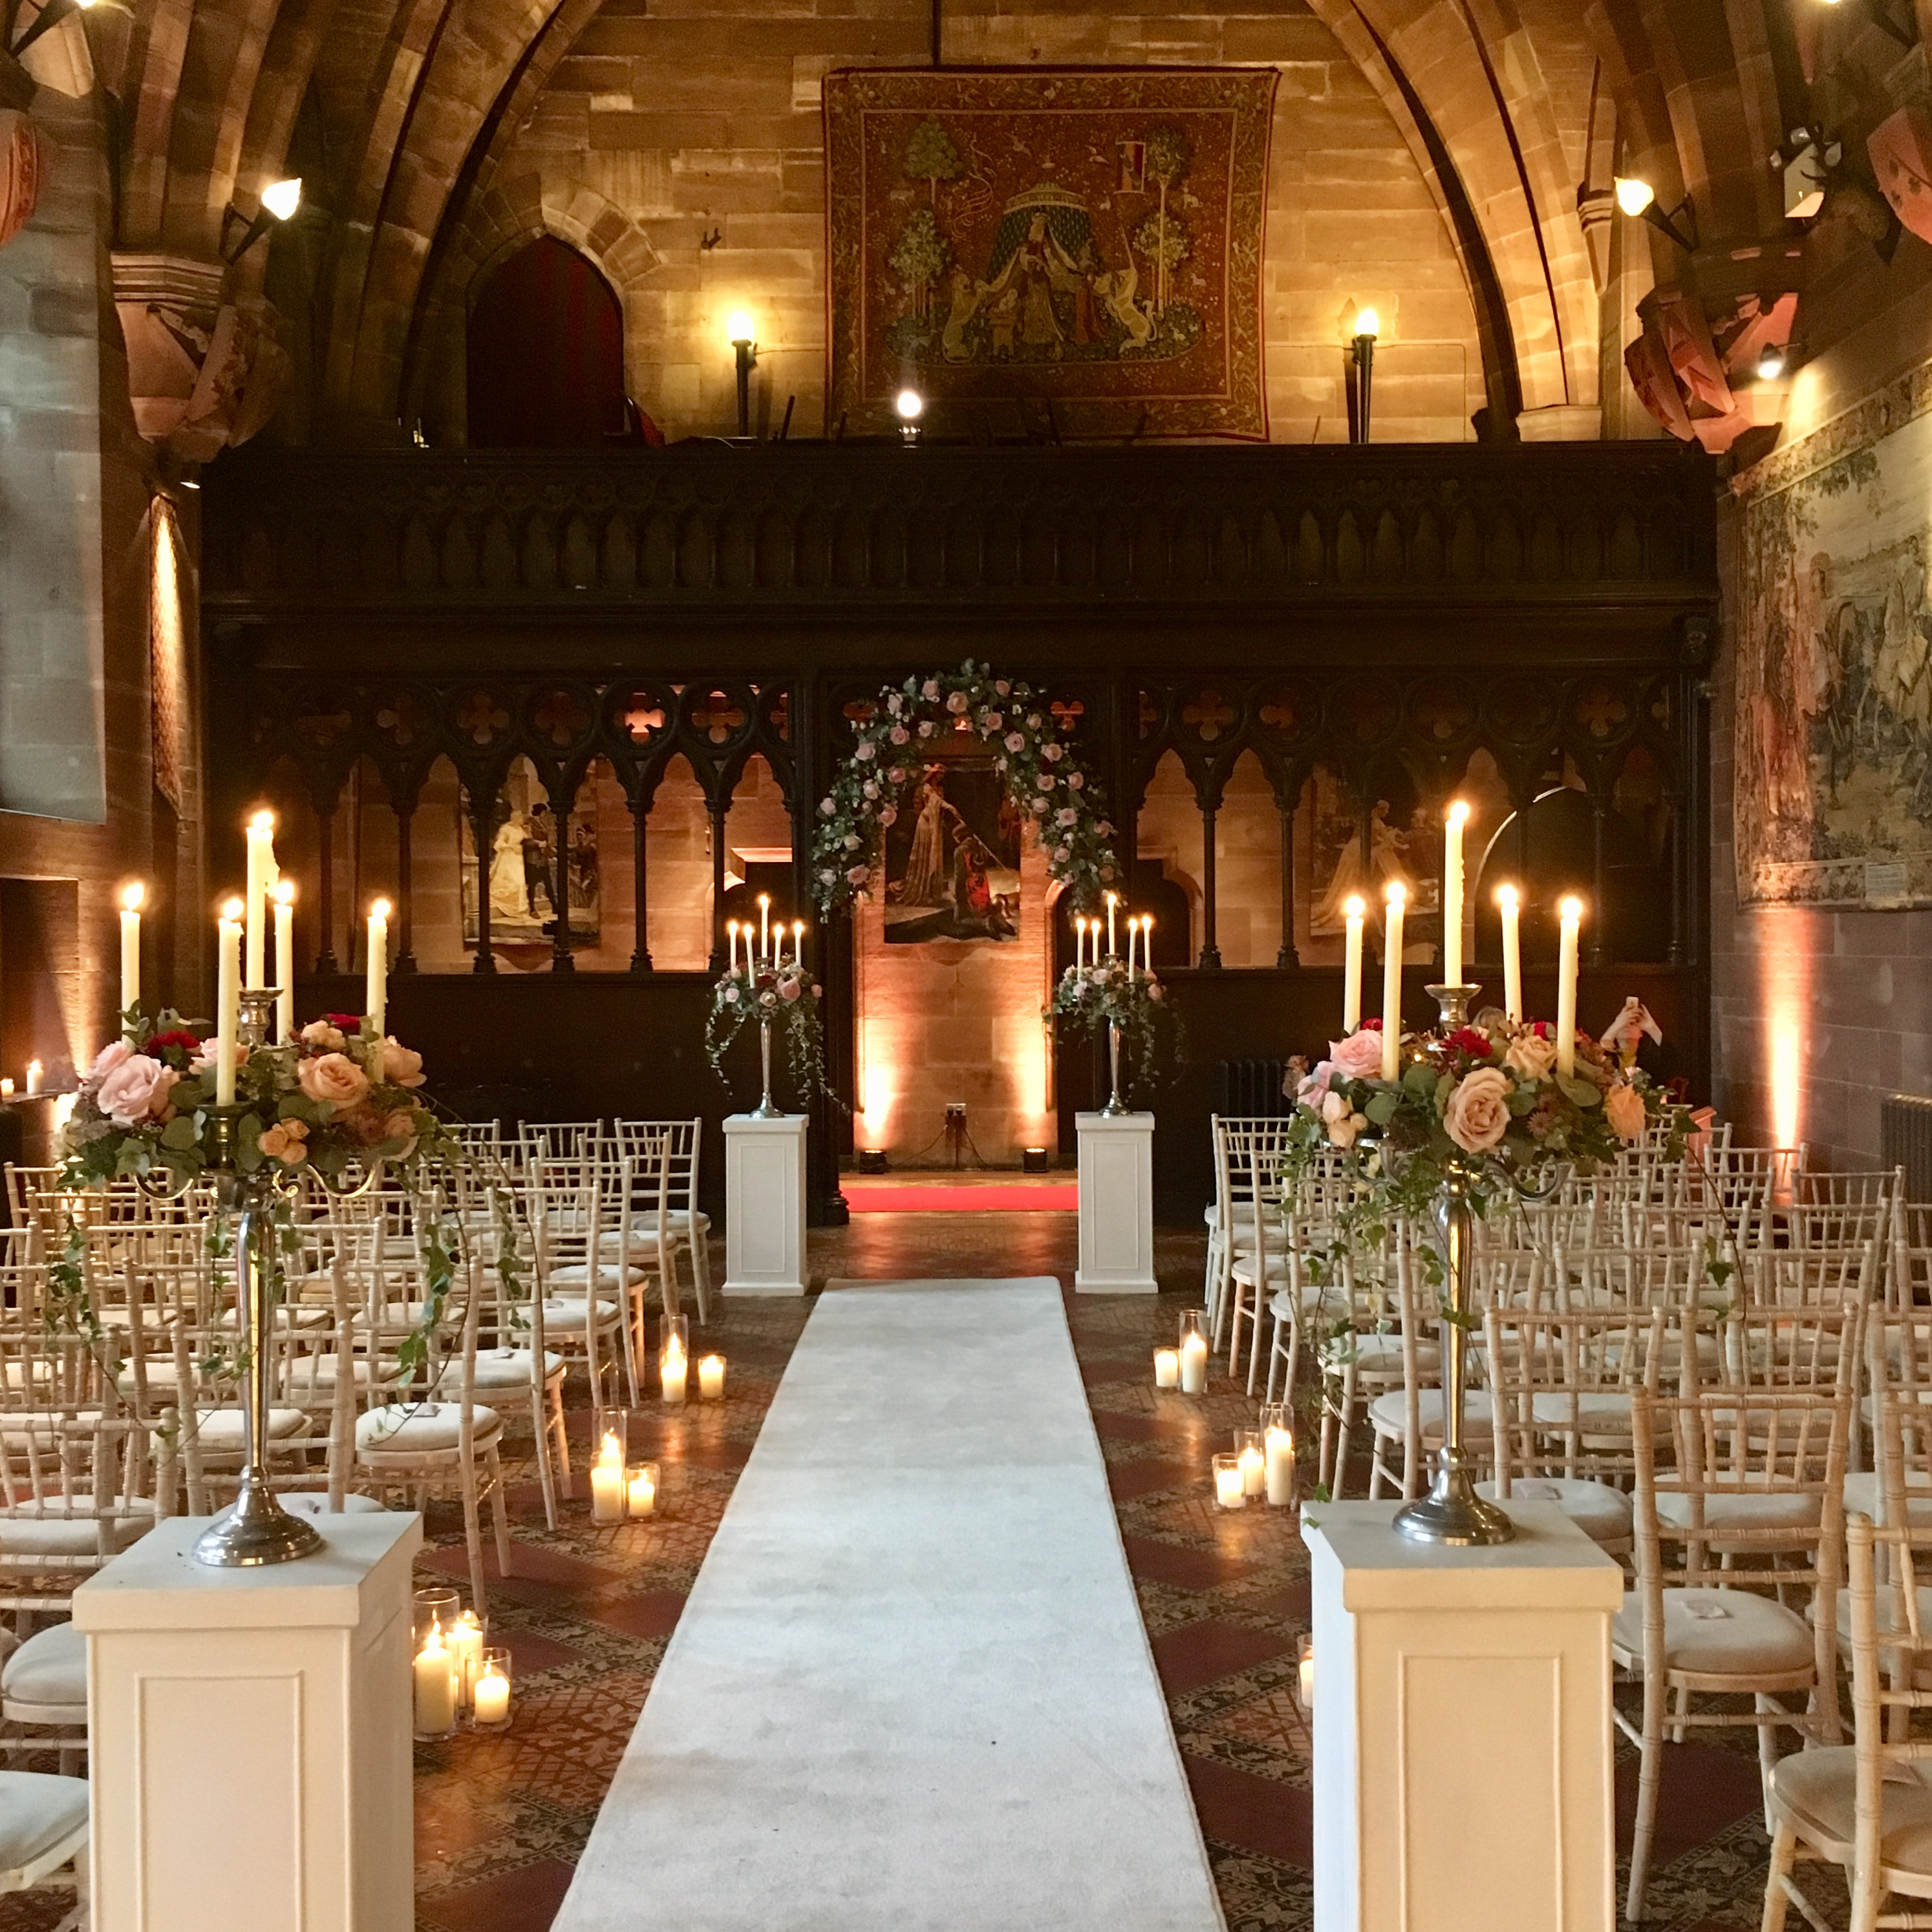 Craig Smith Music piannist for Peckforton Castle wedding piano